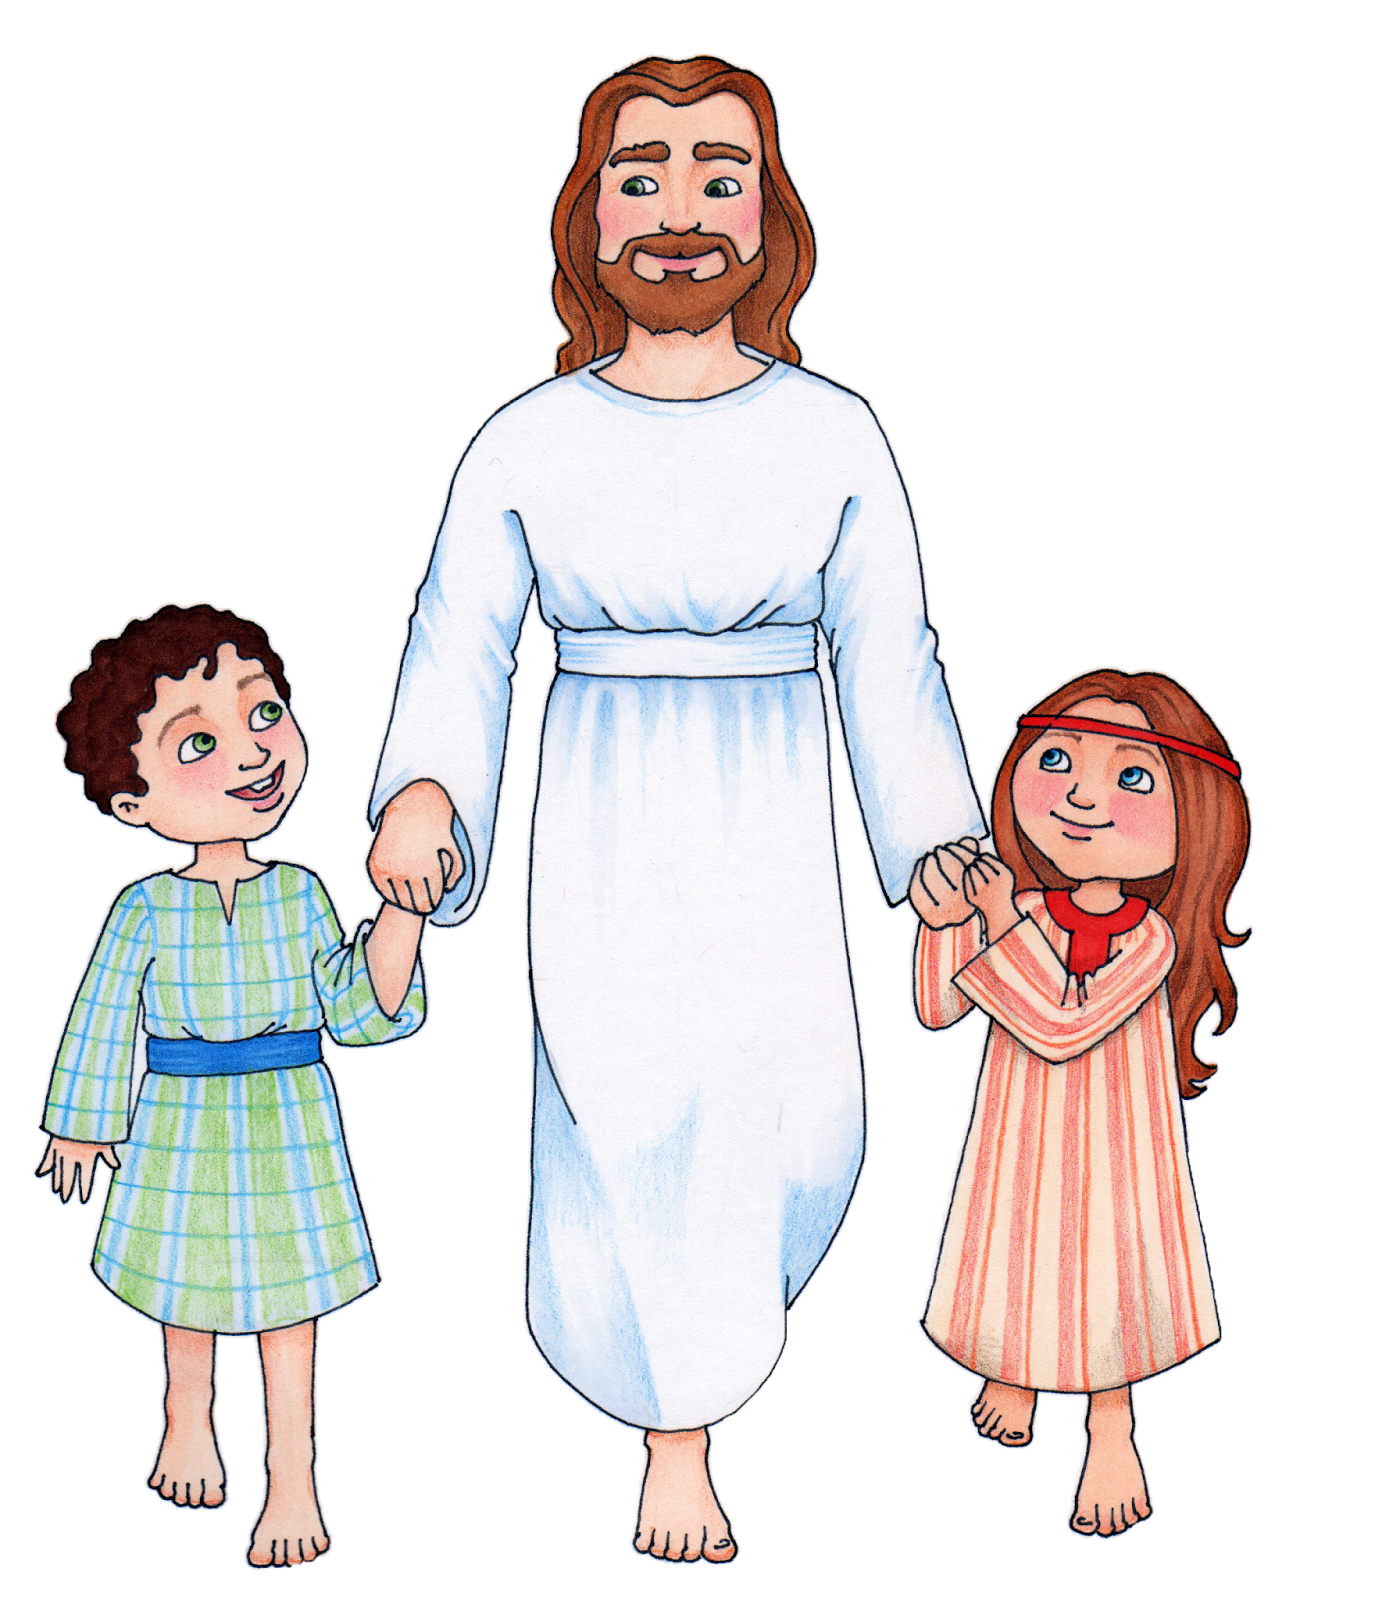 Clip Art Of Jesus With Children Free Cli-Clip art of jesus with children free clip art of jesus with-1